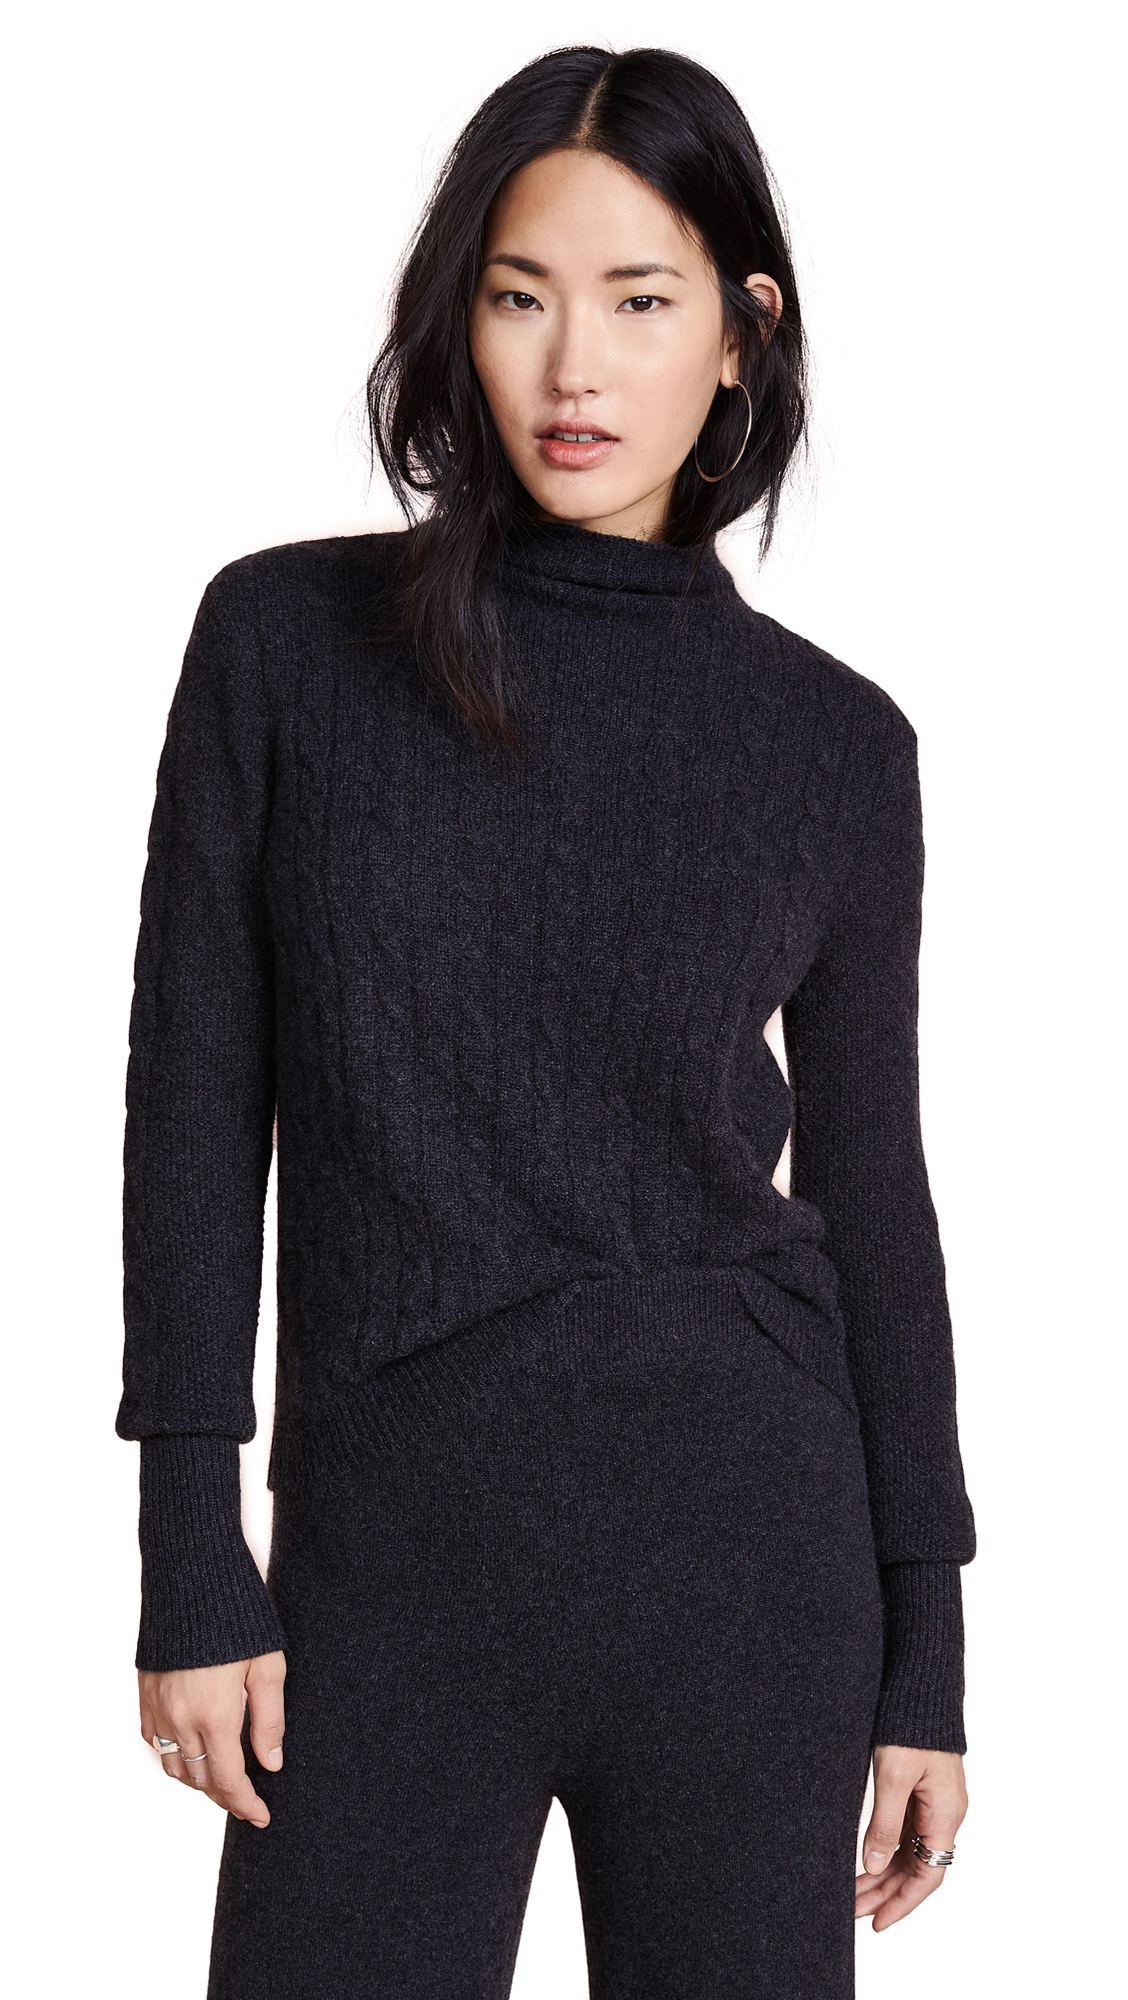 VEDA Josef Cashmere Sweater in Charcoal